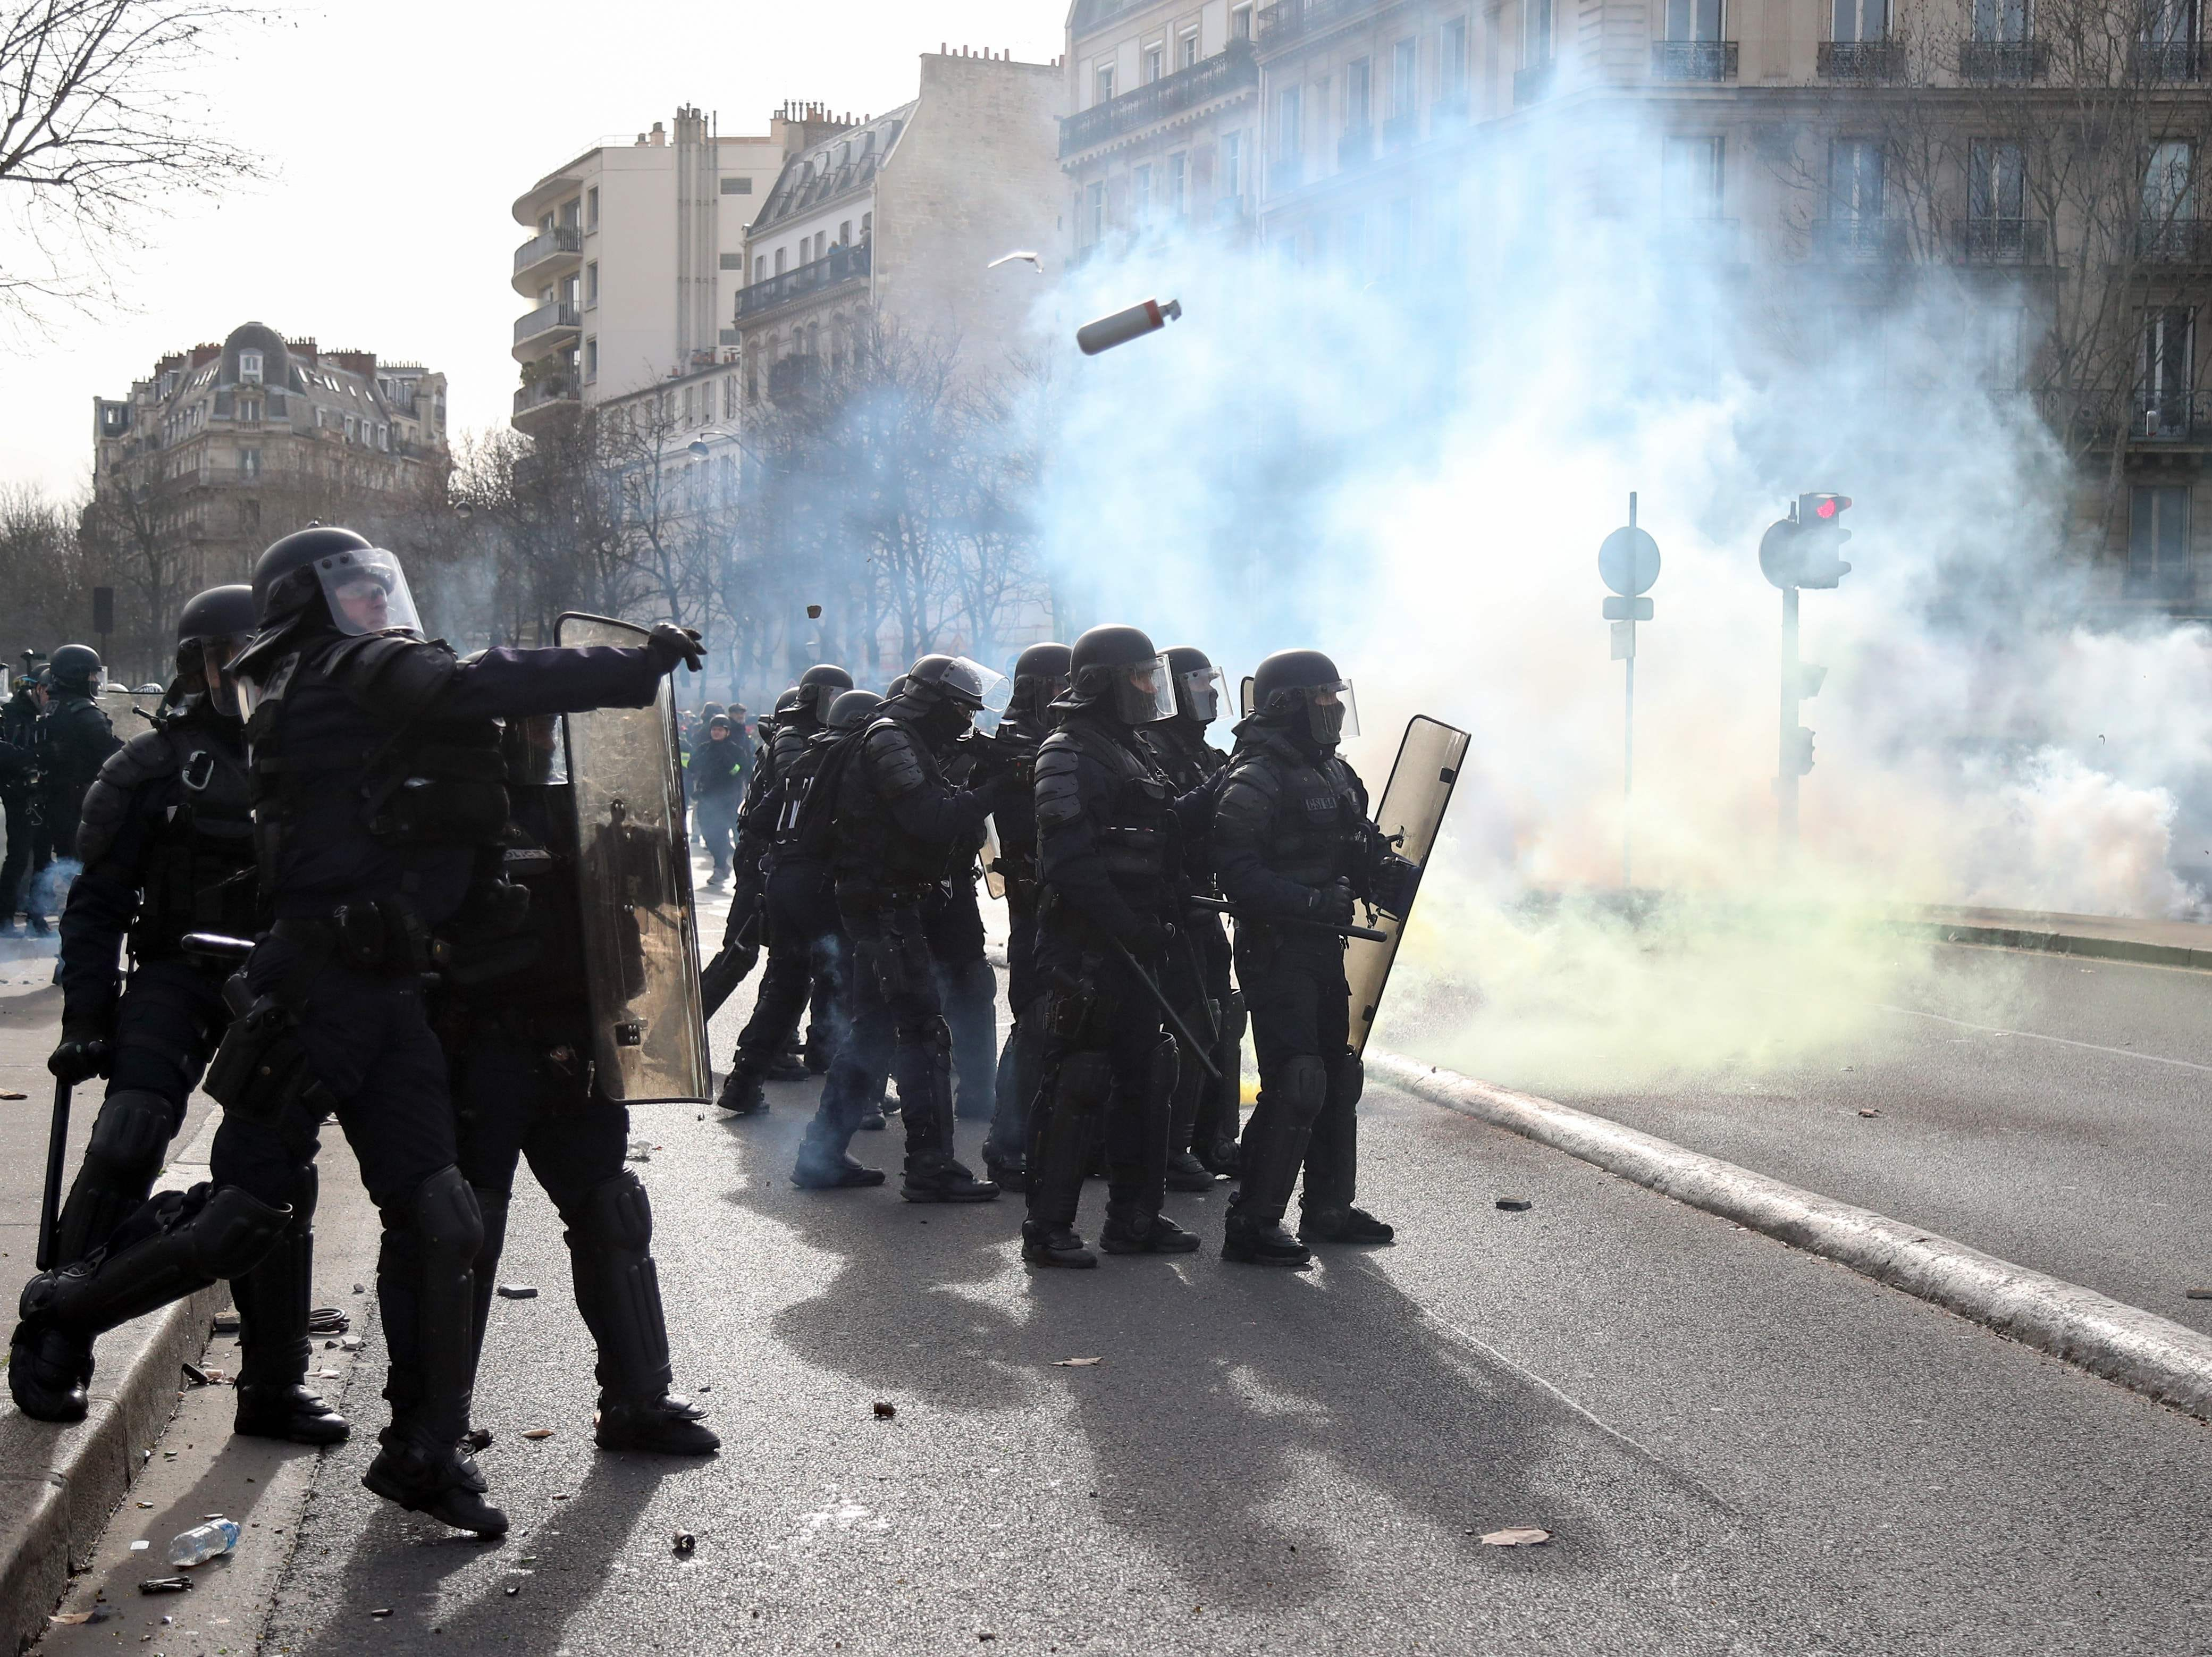 Police officers throw tear gas to protesters during the 13th consecutive Saturday demonstration called by the 'Yellow Vests' (Gilets Jaunes) movement in Paris, on Feb. 9, 2019. The 'Yellow Vest' movement in France originally started as a protest about planned fuel hikes but has morphed into a mass protest against French President's policies and top-down style of governing.